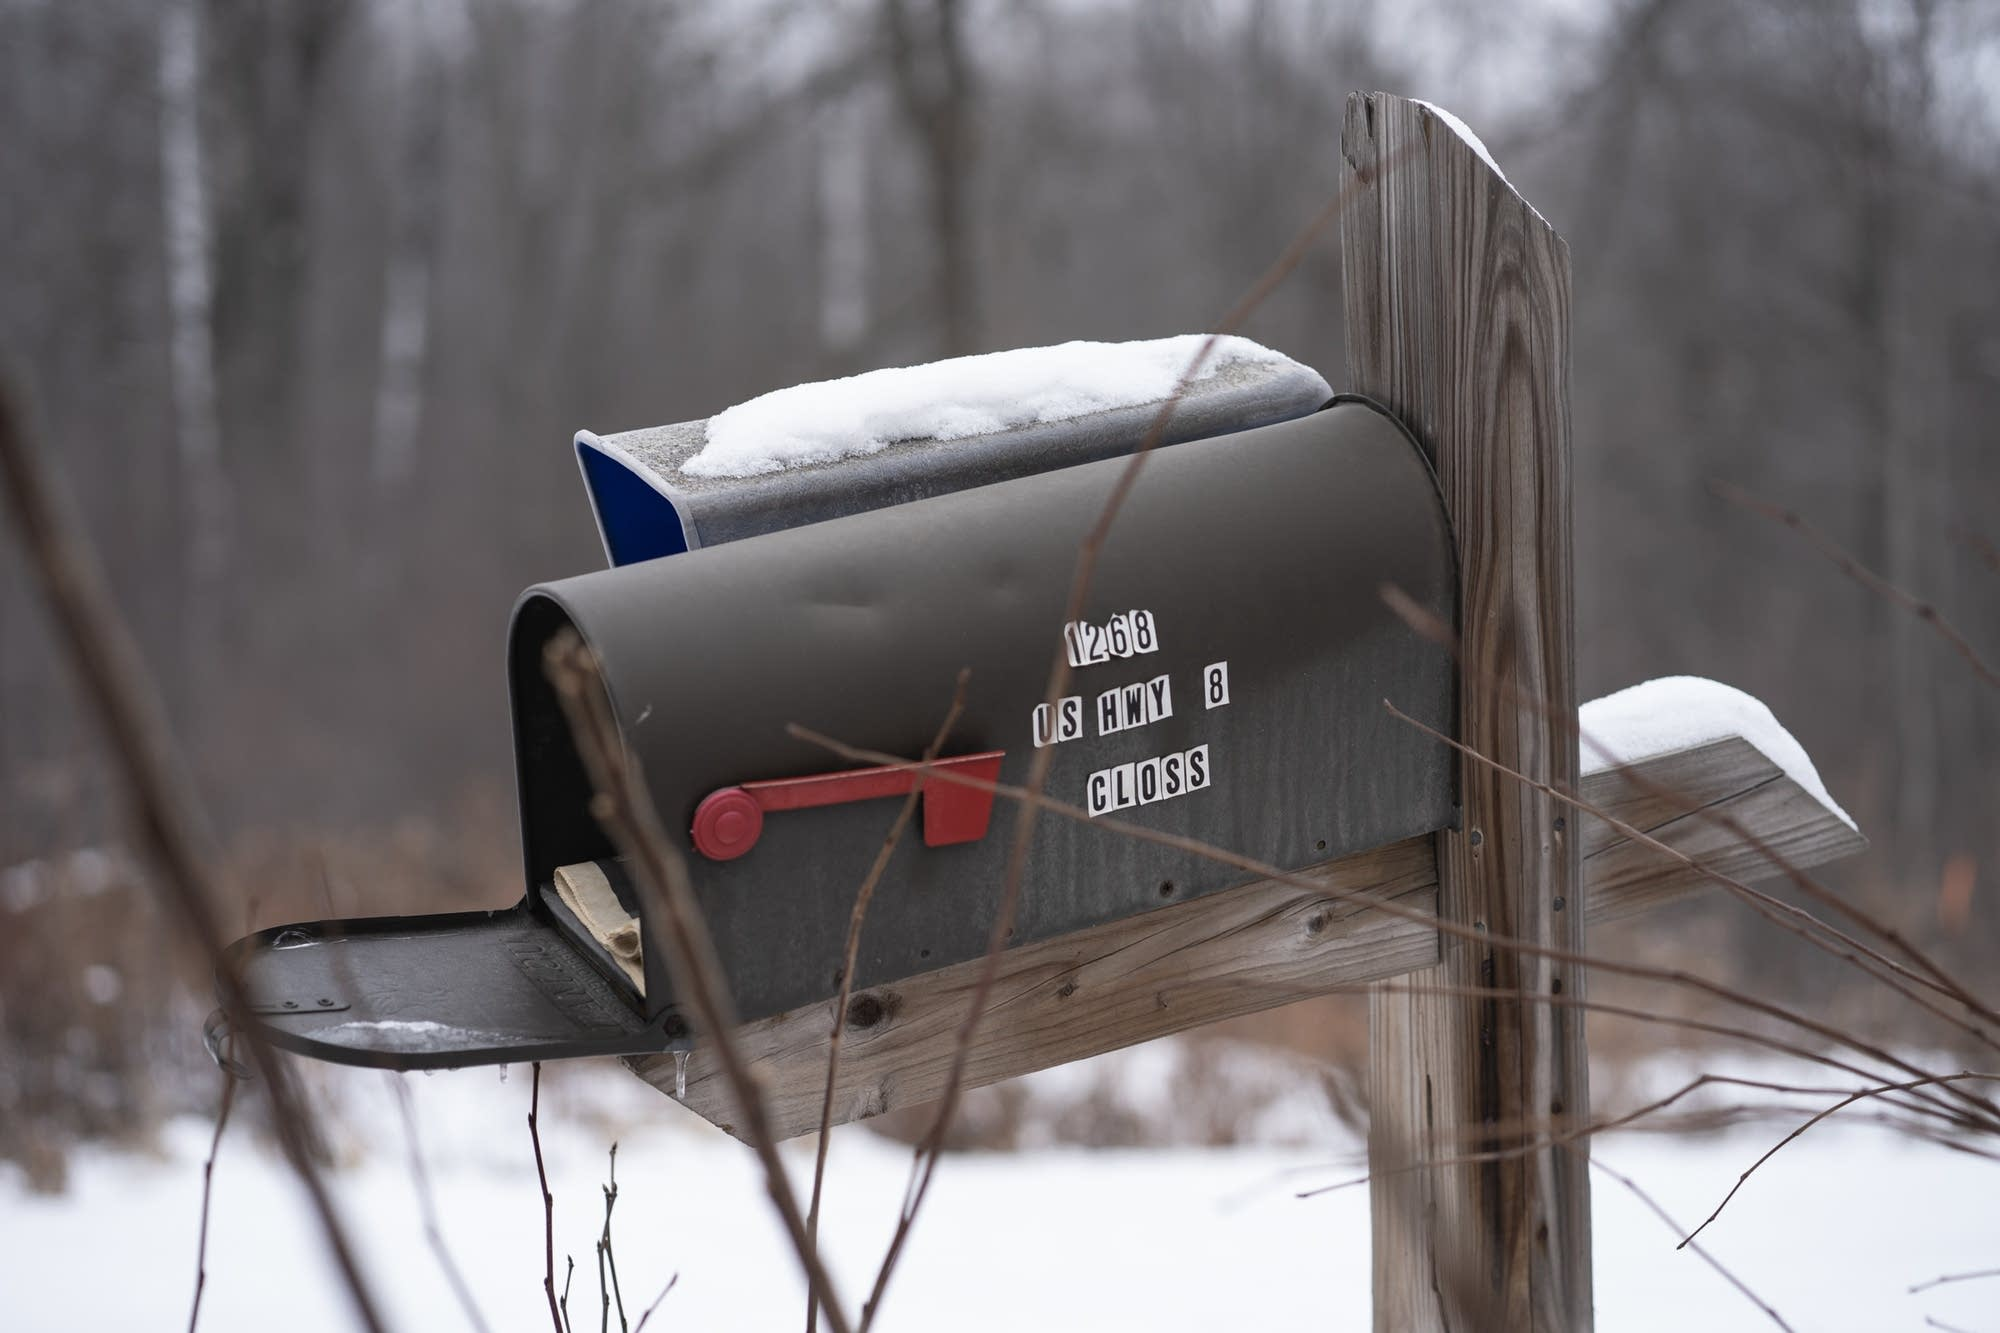 The mailbox sits open outside of the Closs home in Barron, Wis.